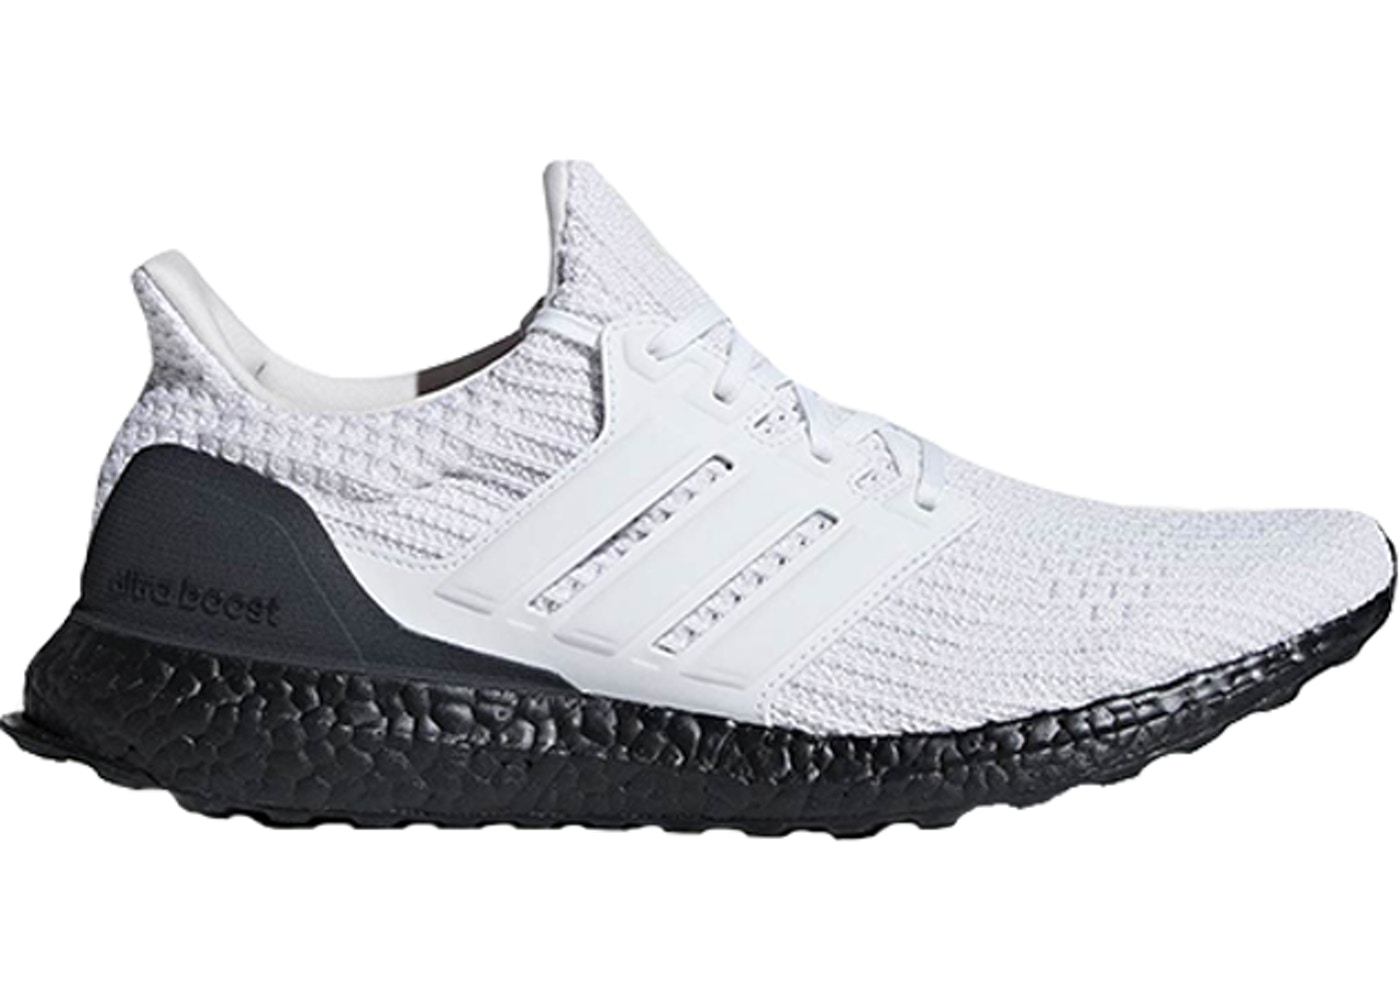 fd46605872b6 adidas Ultra Boost Shoes - Release Date